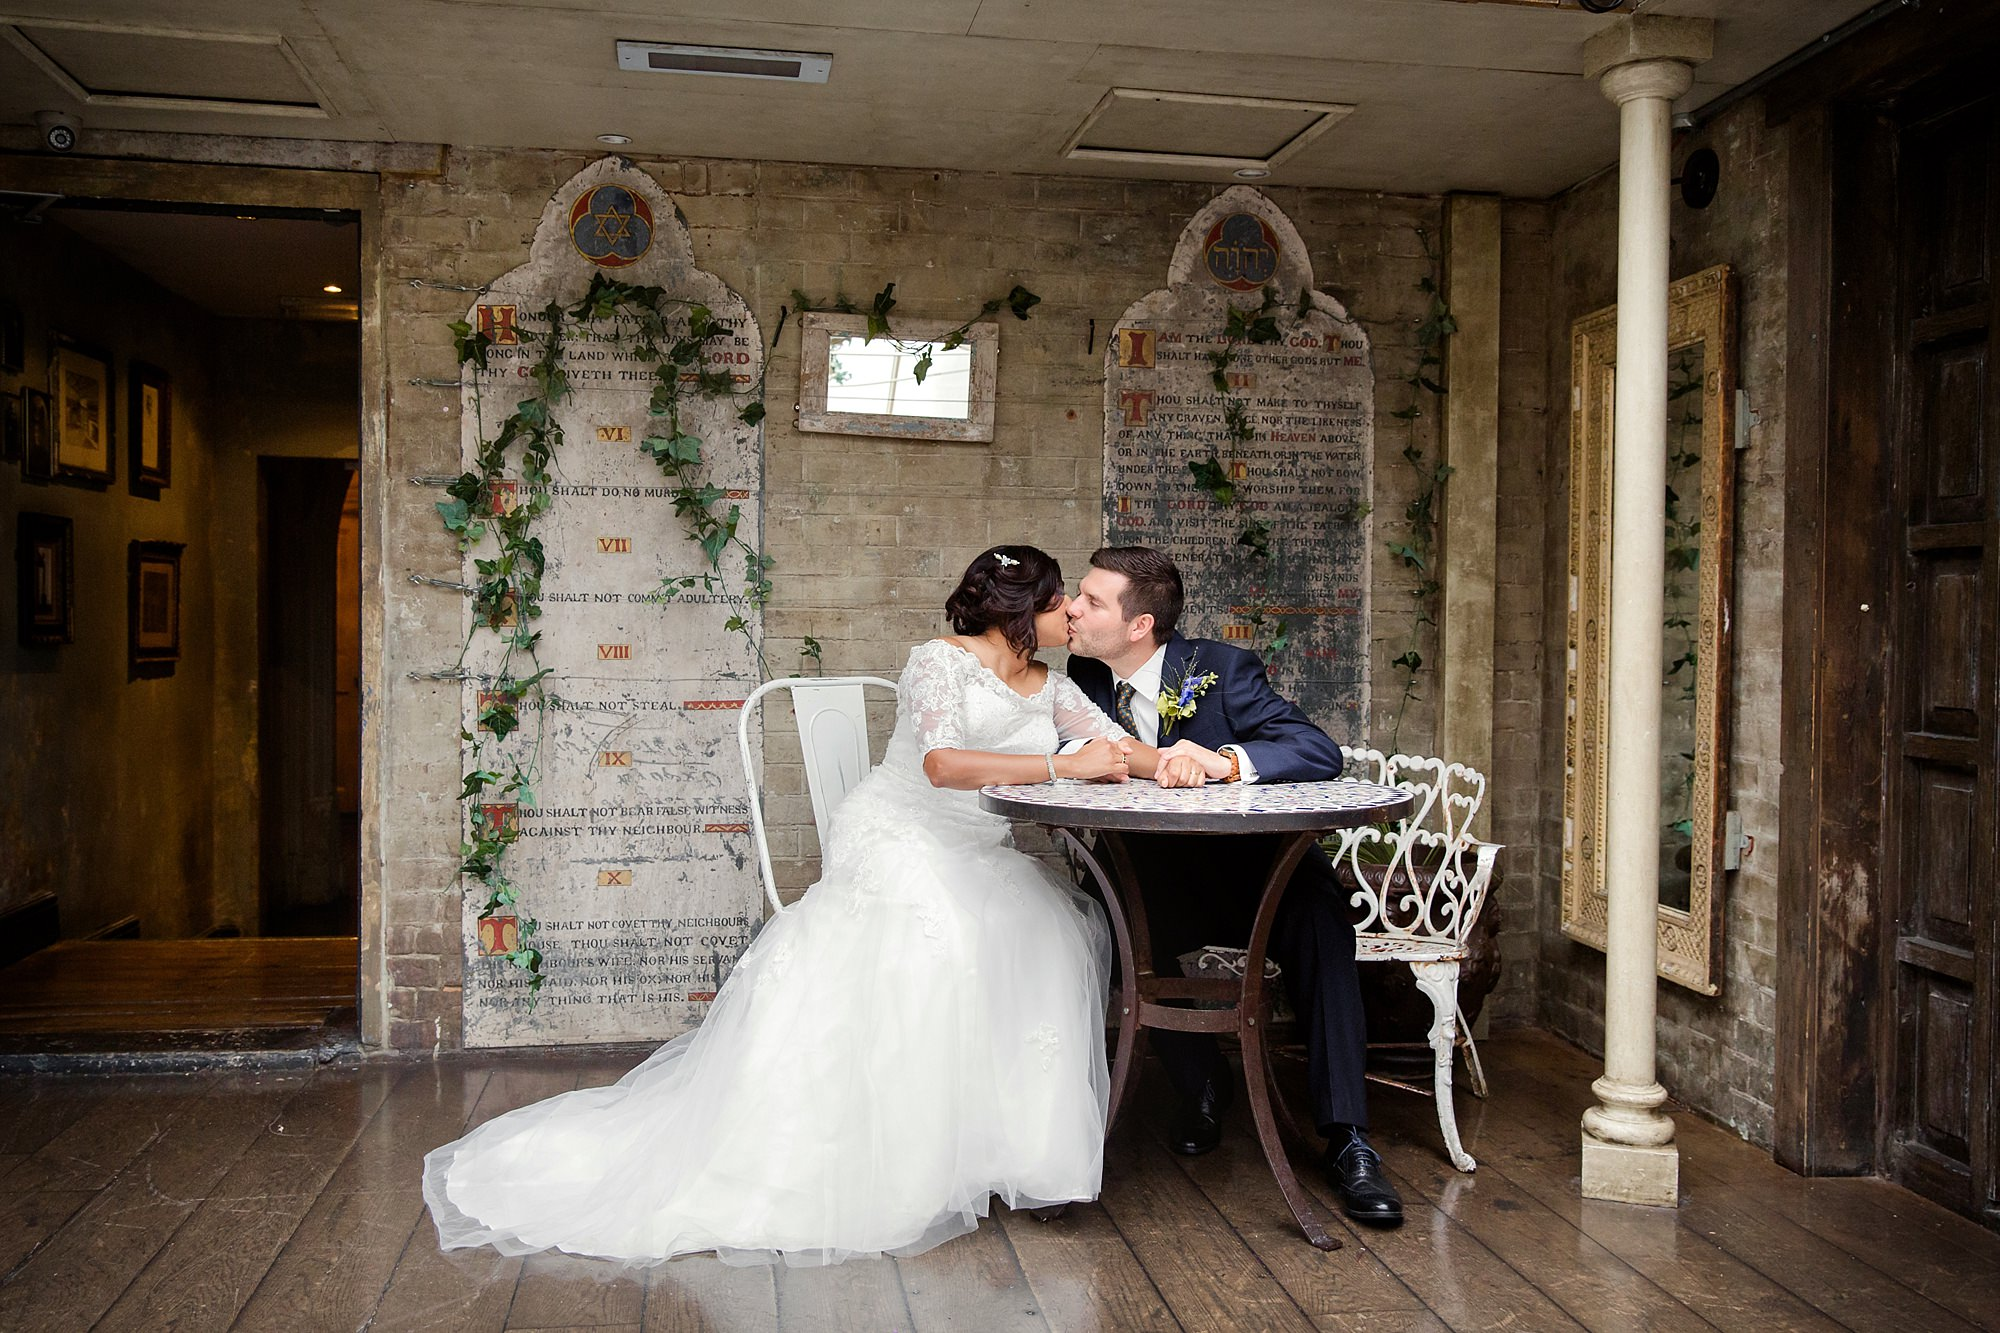 Paradise by way of Kensal Green wedding bride and groom kiss